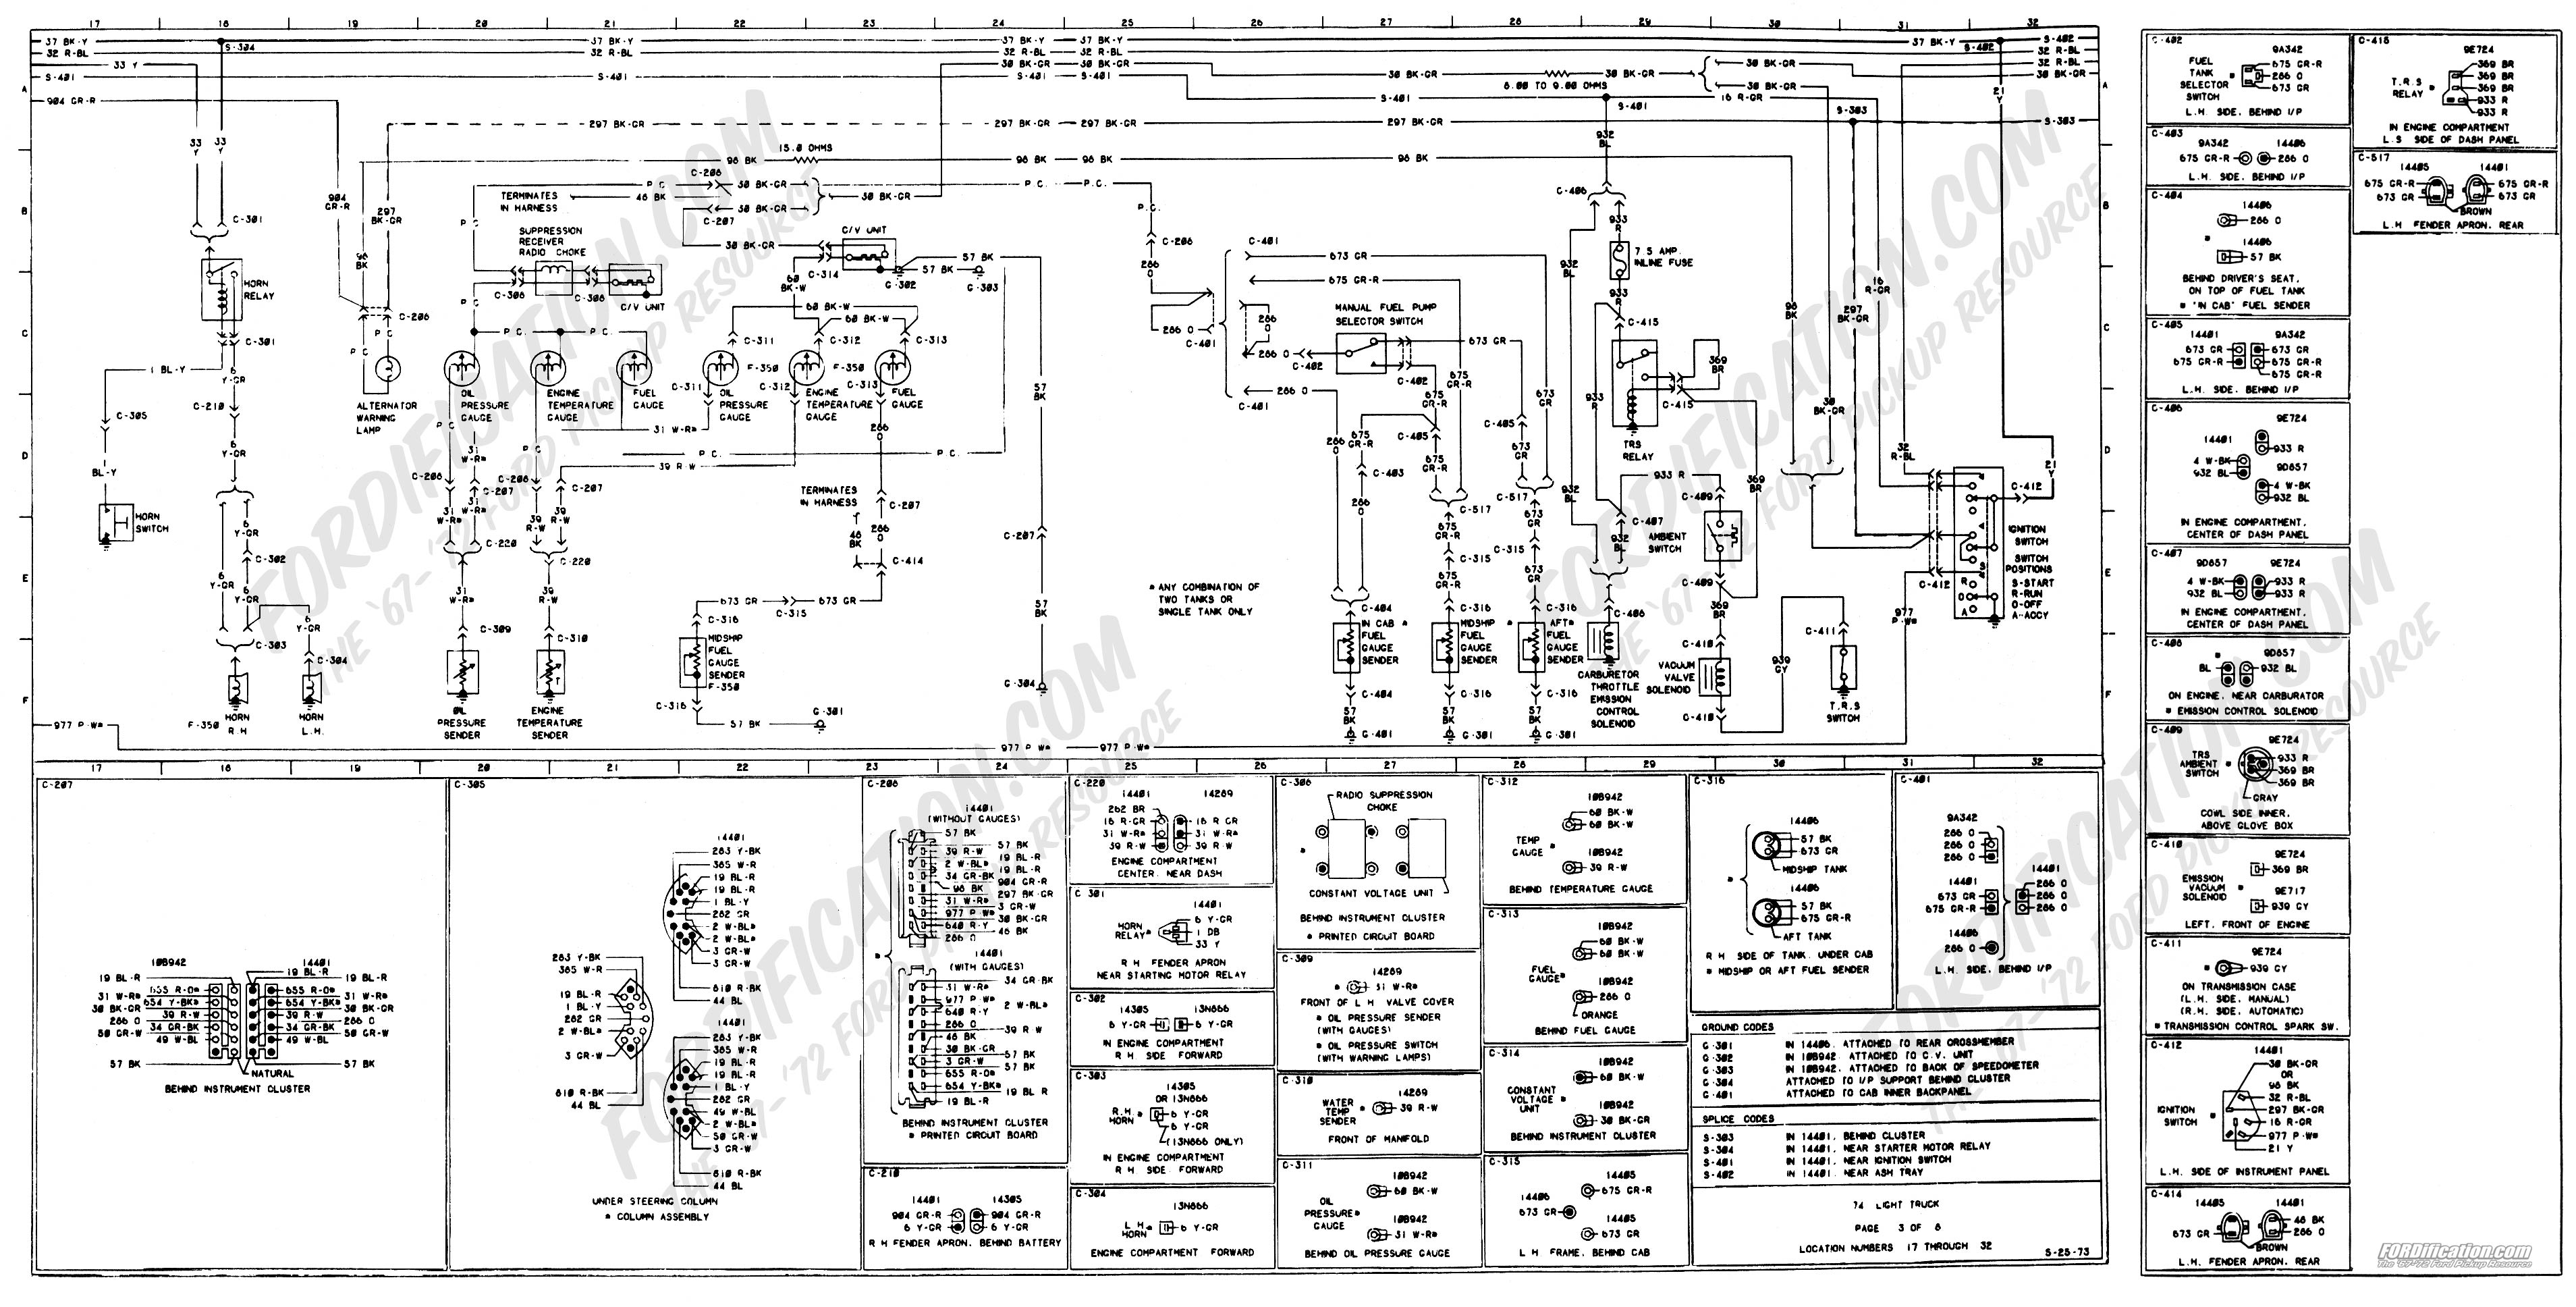 wiring_74master_3of8 1973 1979 ford truck wiring diagrams & schematics fordification net 1979 bronco fuse box diagram at aneh.co